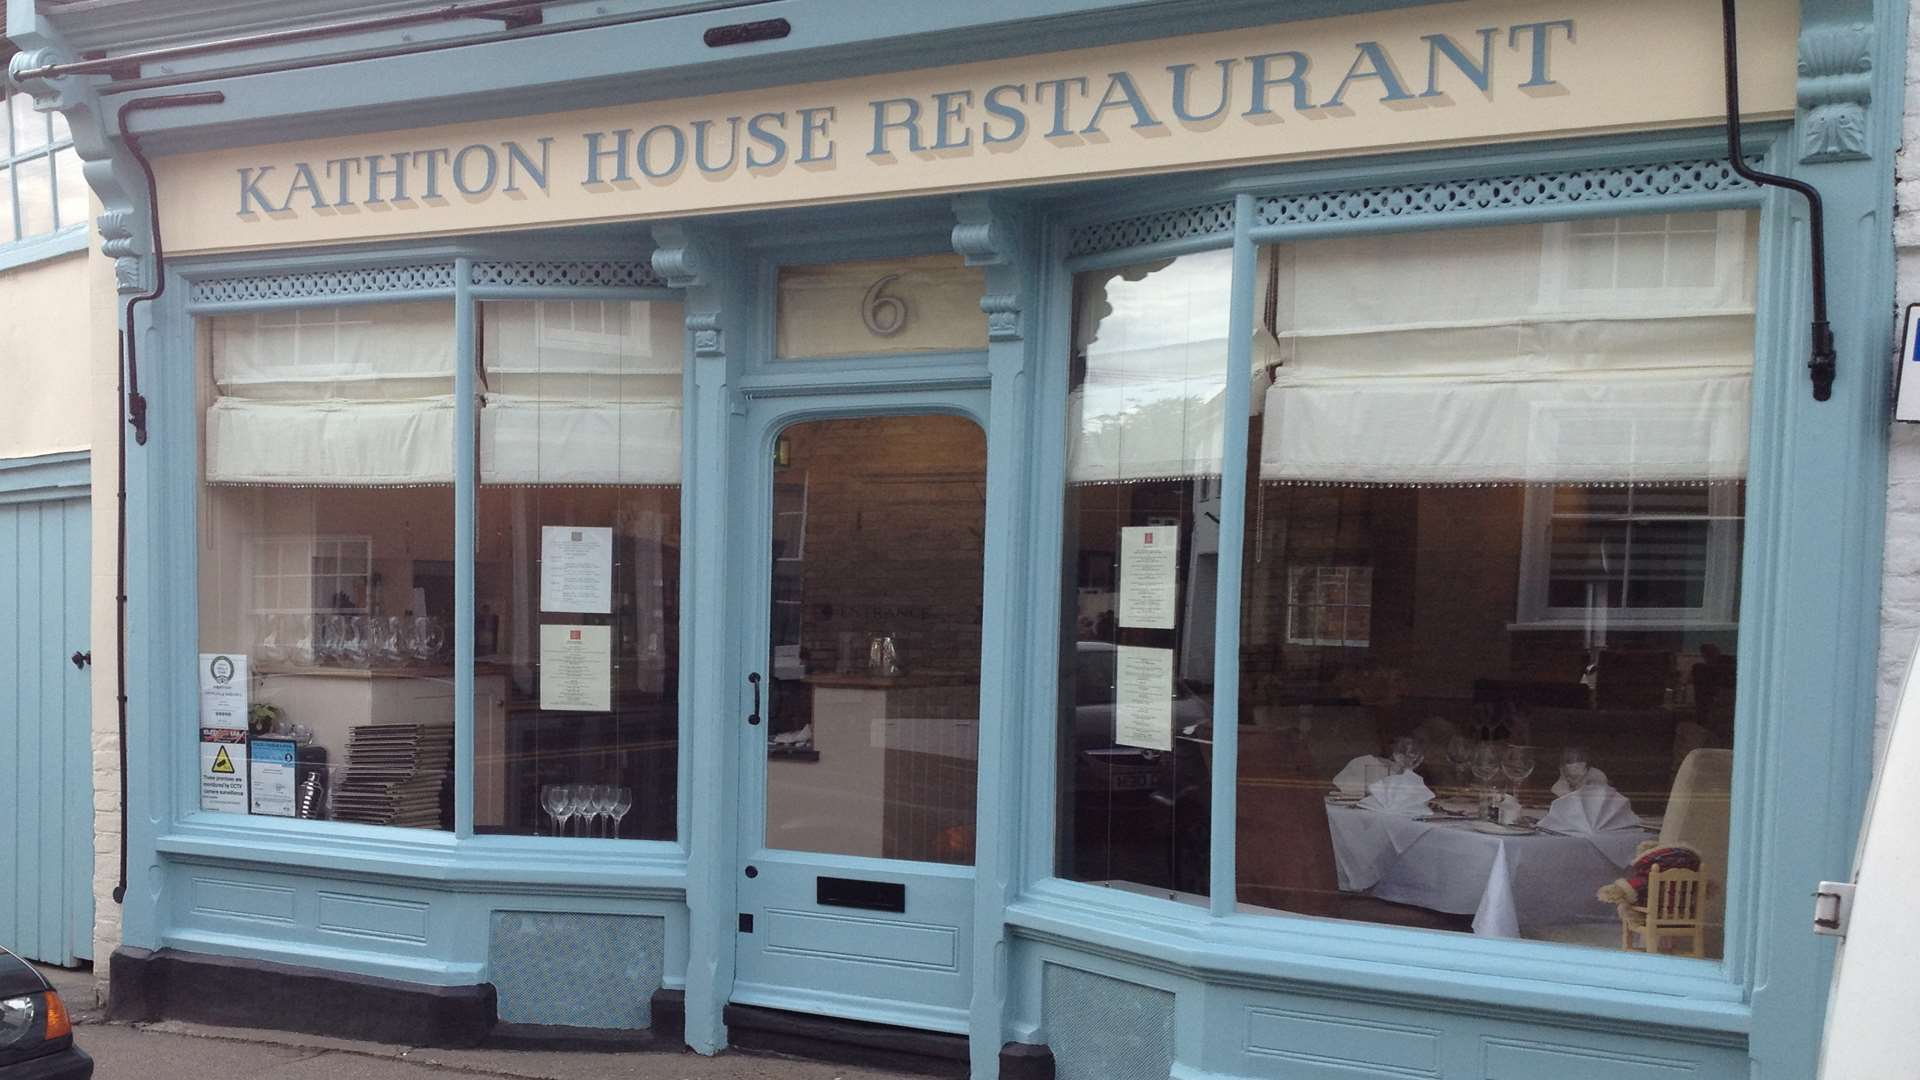 Kathton House, in Sturry, is Kent's best restaurant according to TripAdvisor